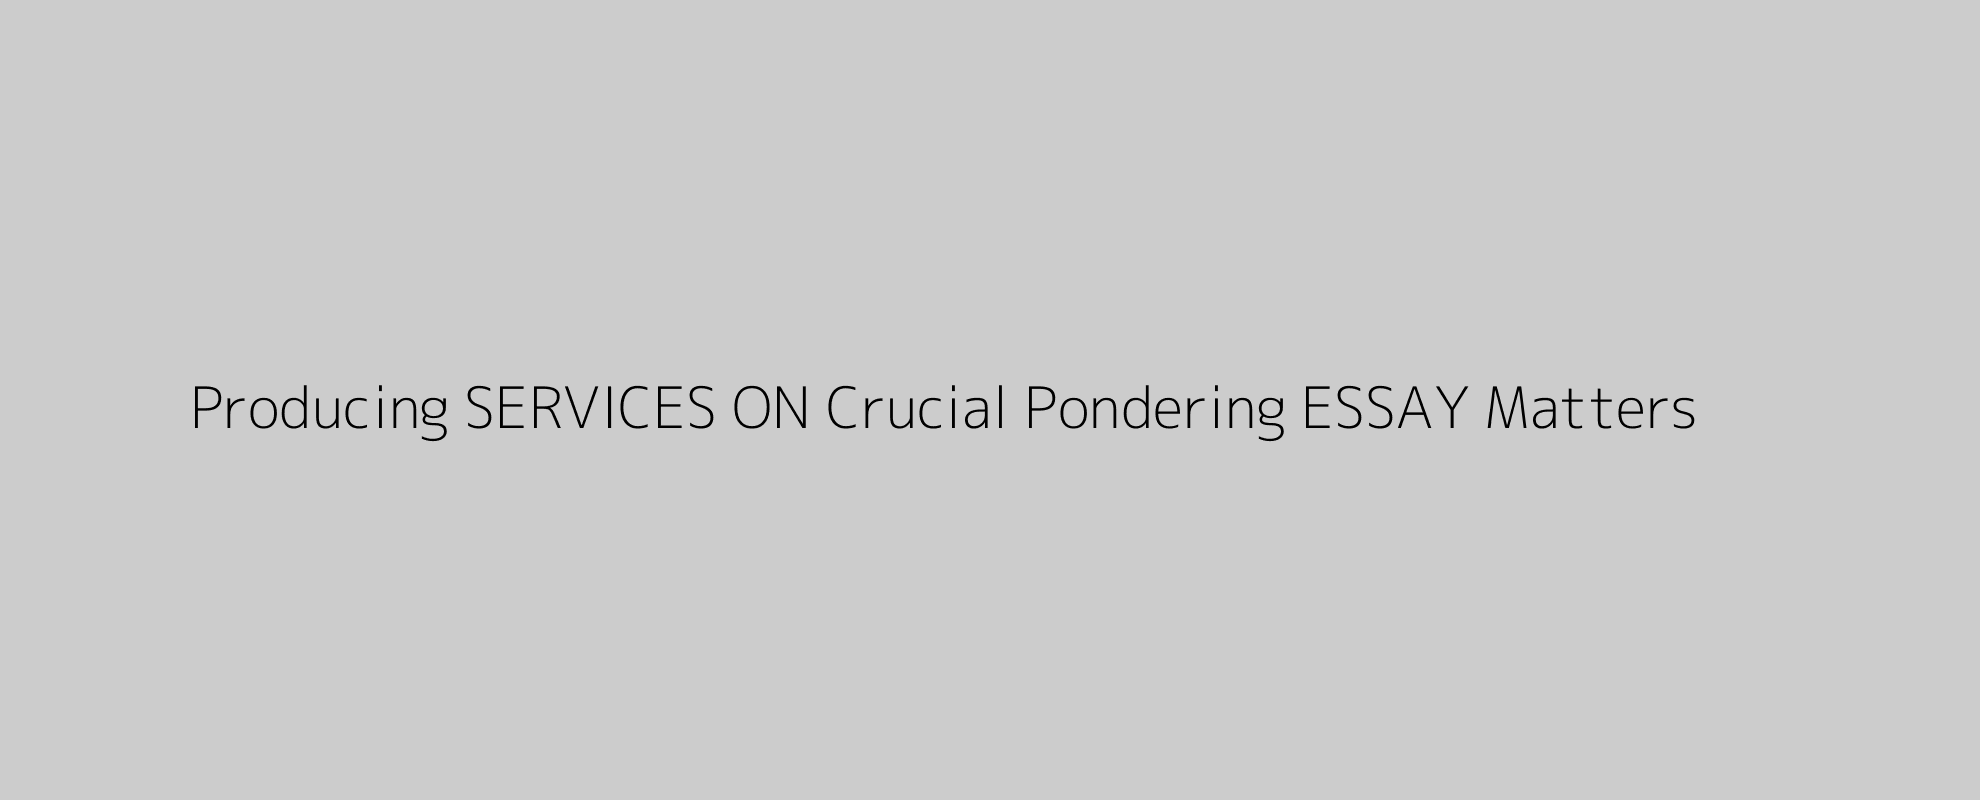 Producing SERVICES ON Crucial Pondering ESSAY Matters